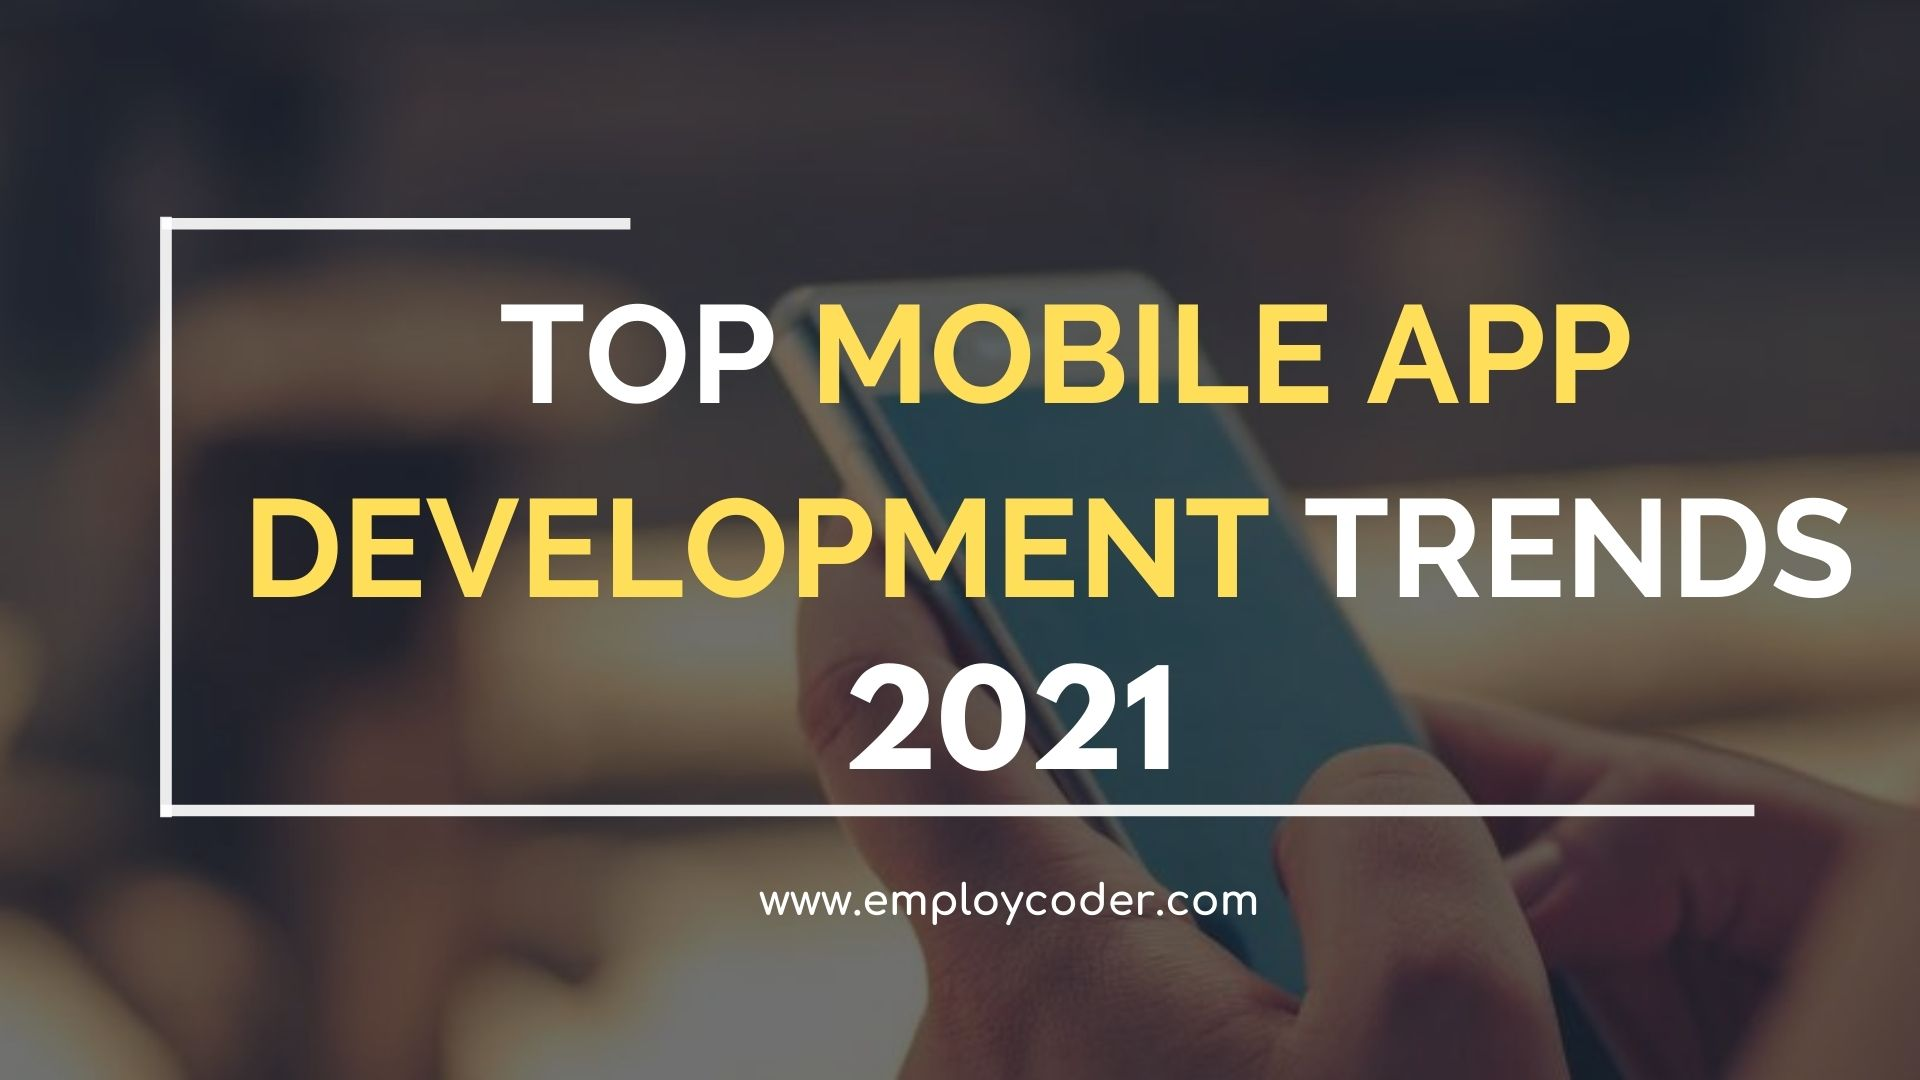 Mobile App Development Trends that will Dominate in 2021